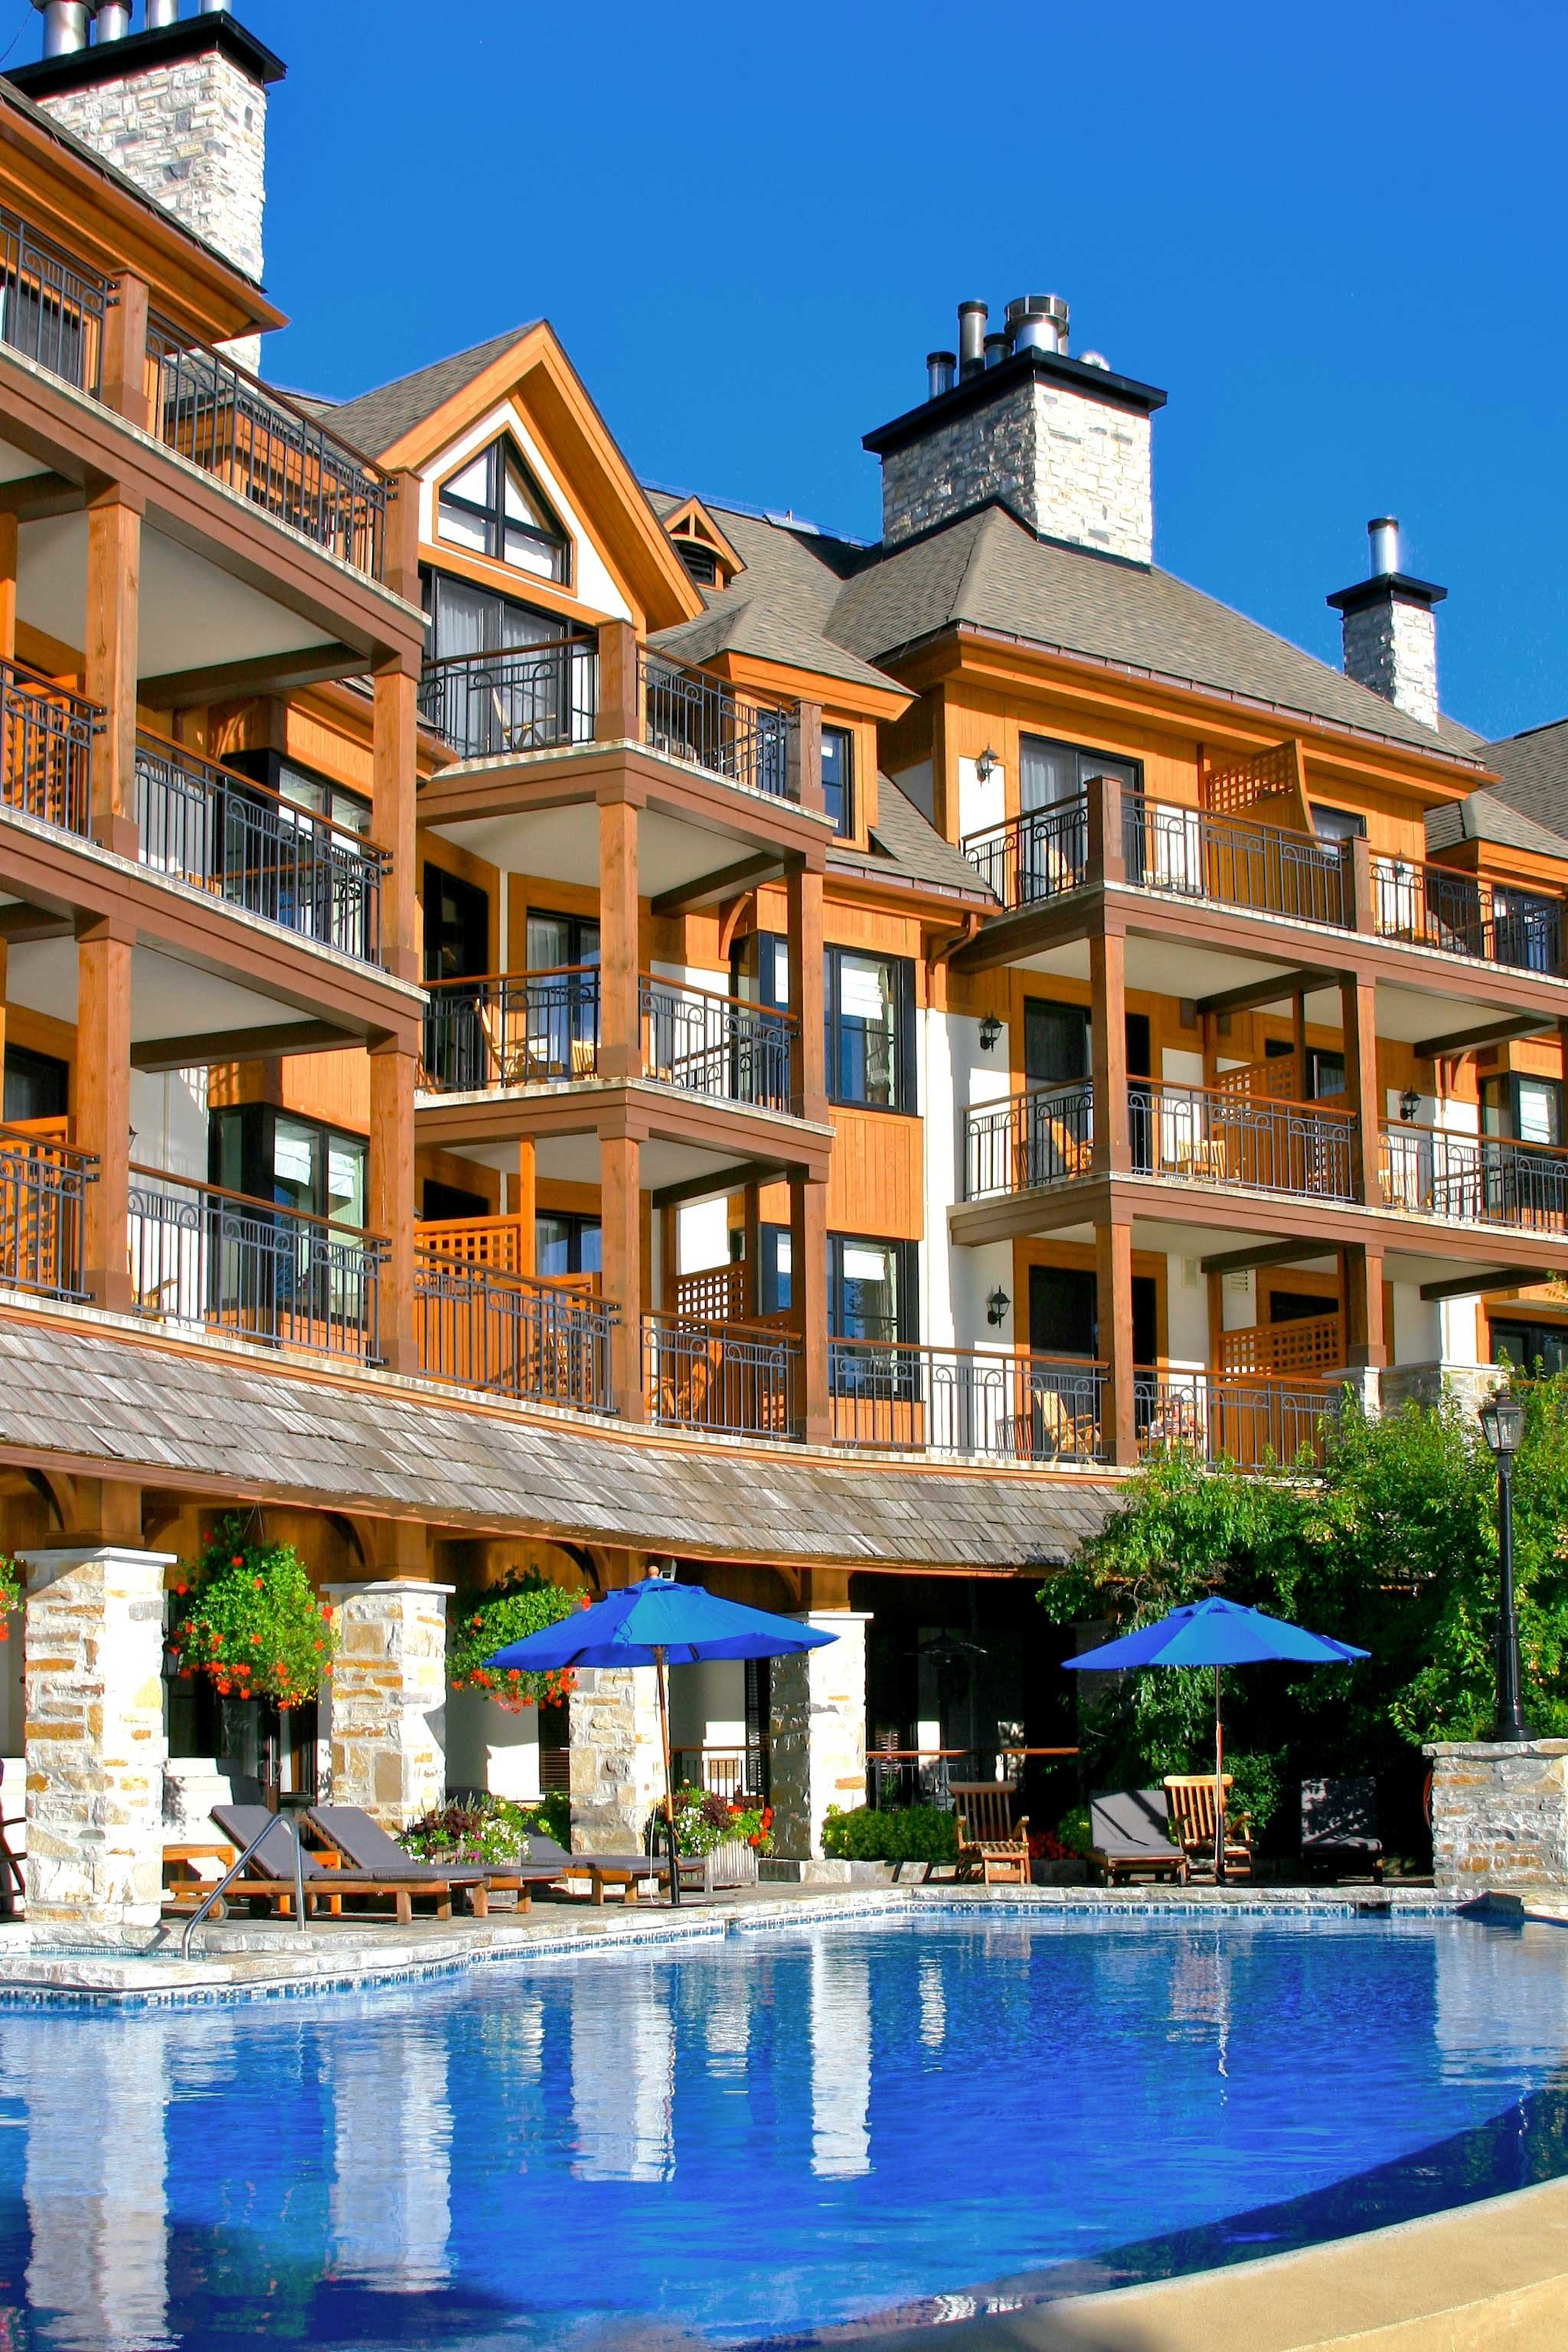 alpine skiing Architecture Buildings East Coast USA Exterior Luxury Play Pool Resort Trip Ideas building outdoor property condominium Town house swimming pool estate plaza vacation residential area home facade palace apartment hotel swimming